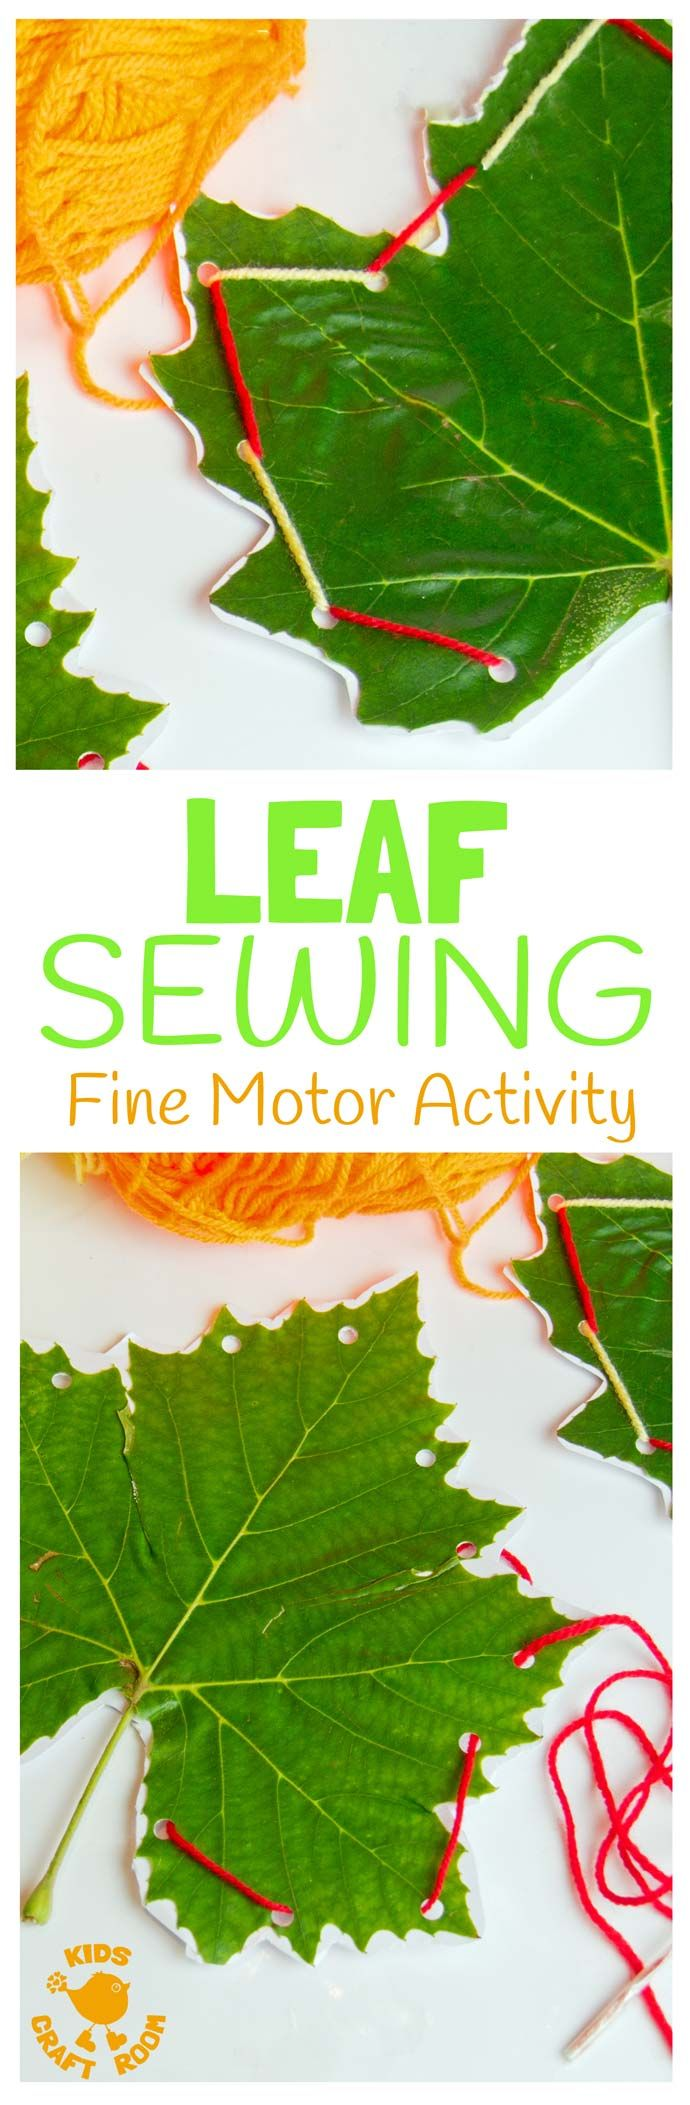 LEAF SEWING - A fun Autumn / Fall craft for kids. This Fall activity builds fine motor skills and connects kids with Nature using real leaves.